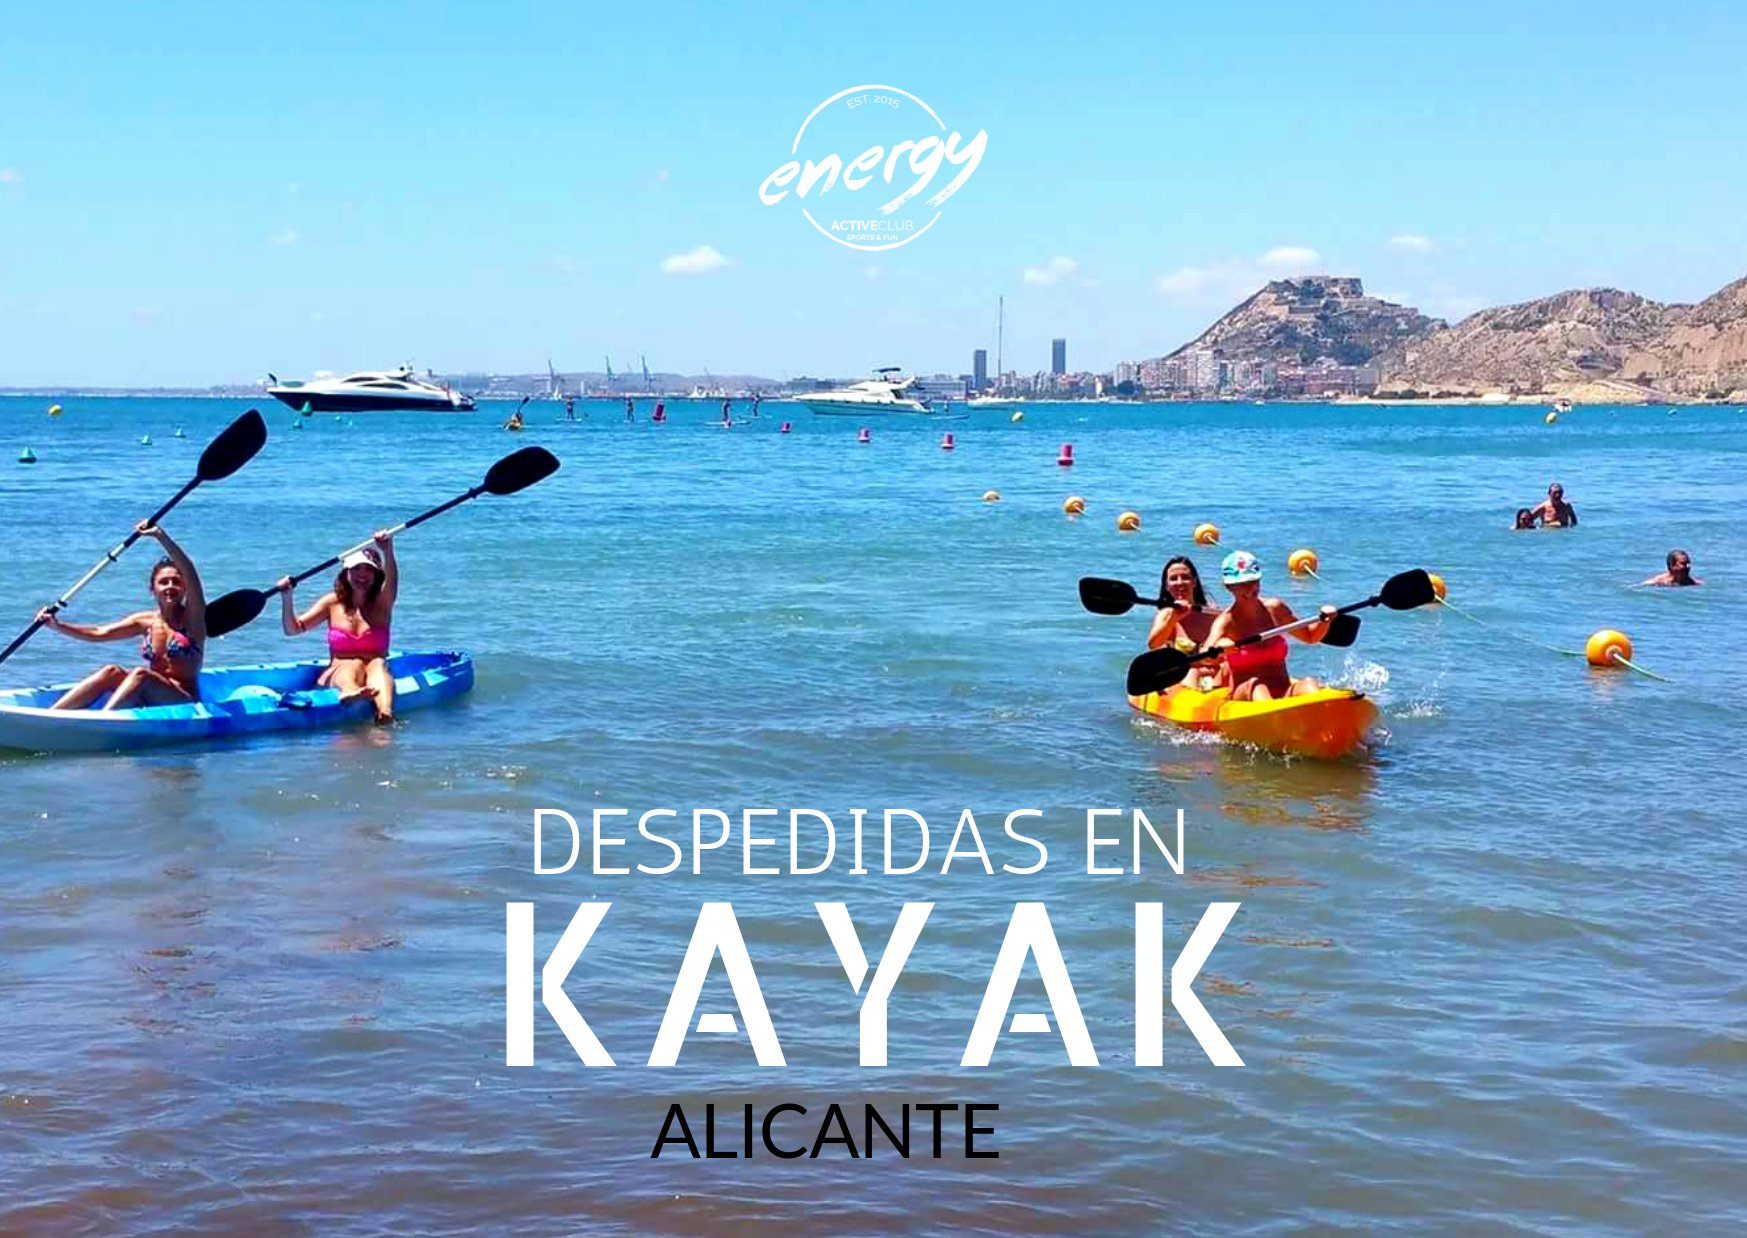 Despedida Kayak alicante